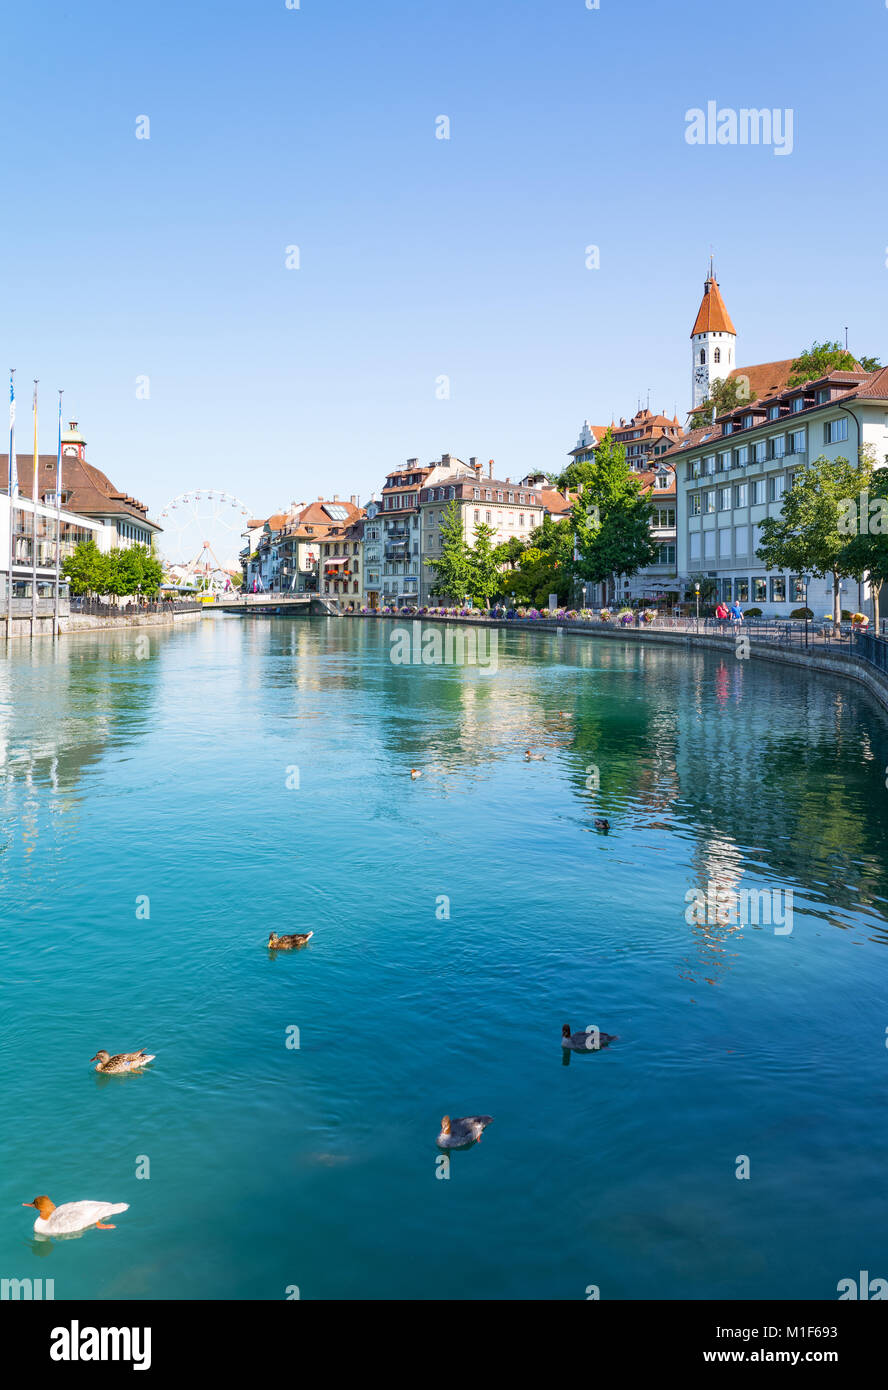 Thun, Switzerland,  The old country center seen from the Aare river - Stock Image